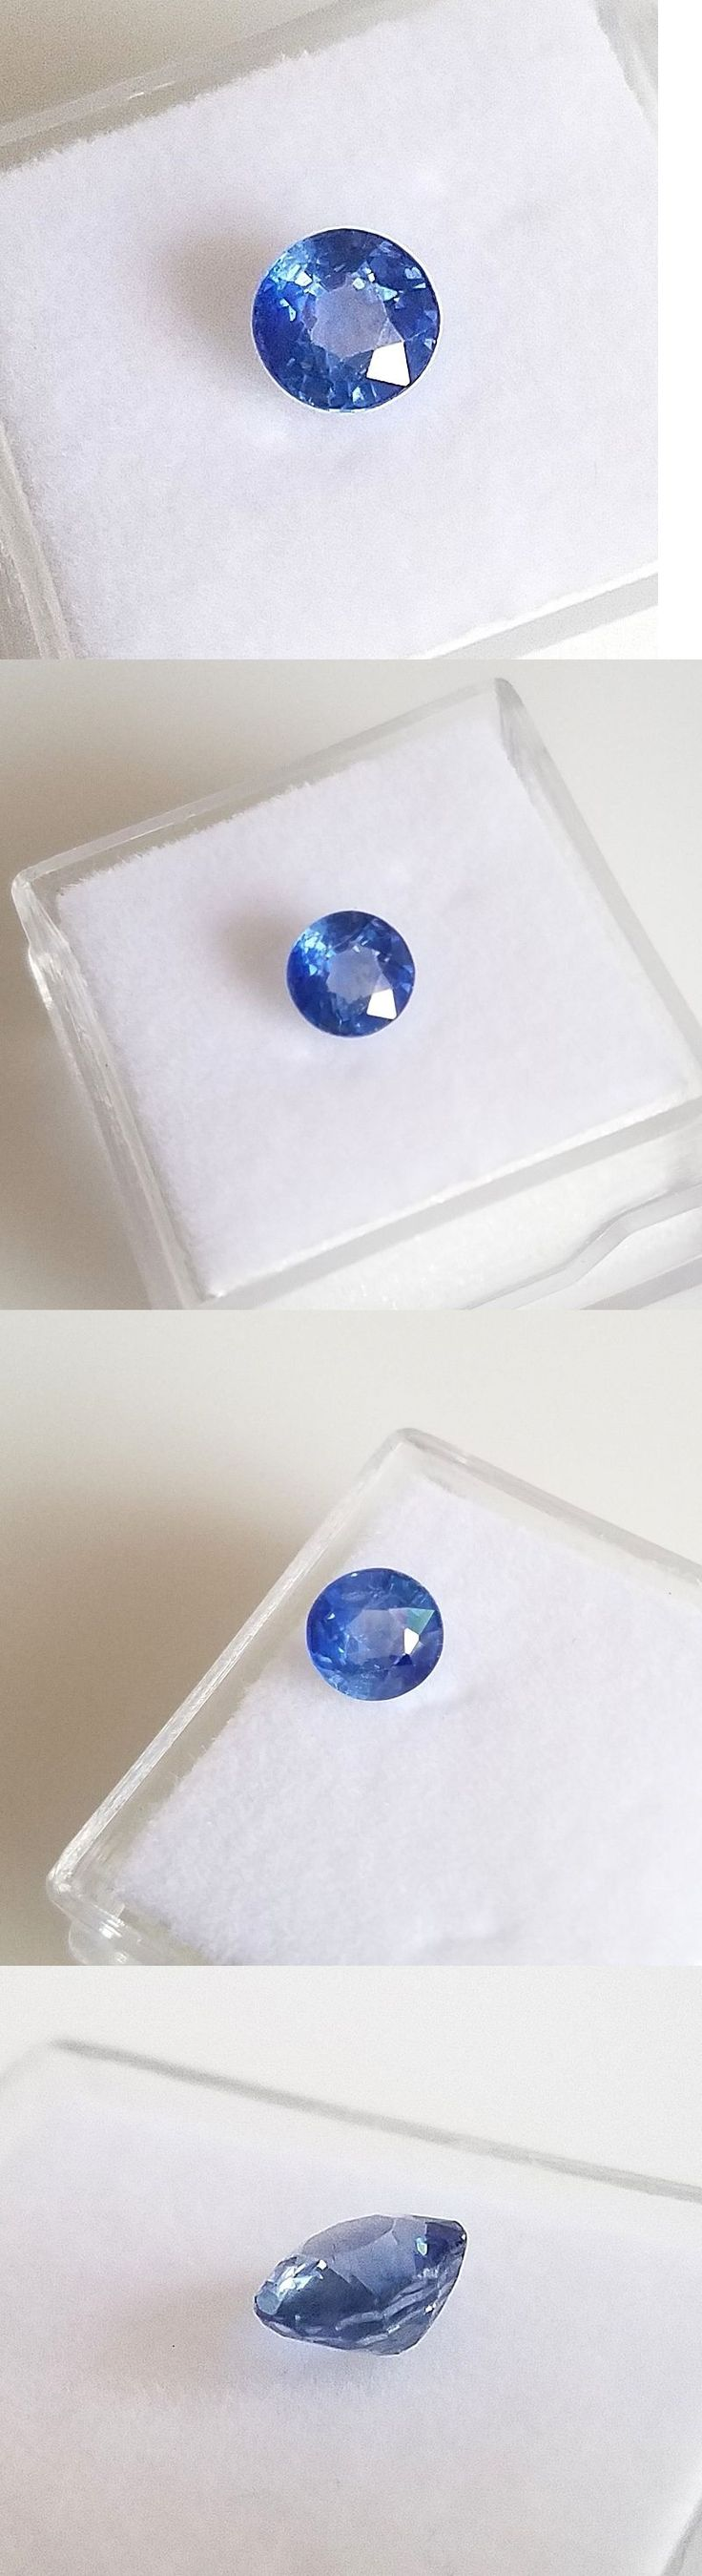 Natural Sapphires 4644: Natural .83 Carat Ceylon Blue Sapphire Genuine Loose Stone Round -> BUY IT NOW ONLY: $139 on eBay!